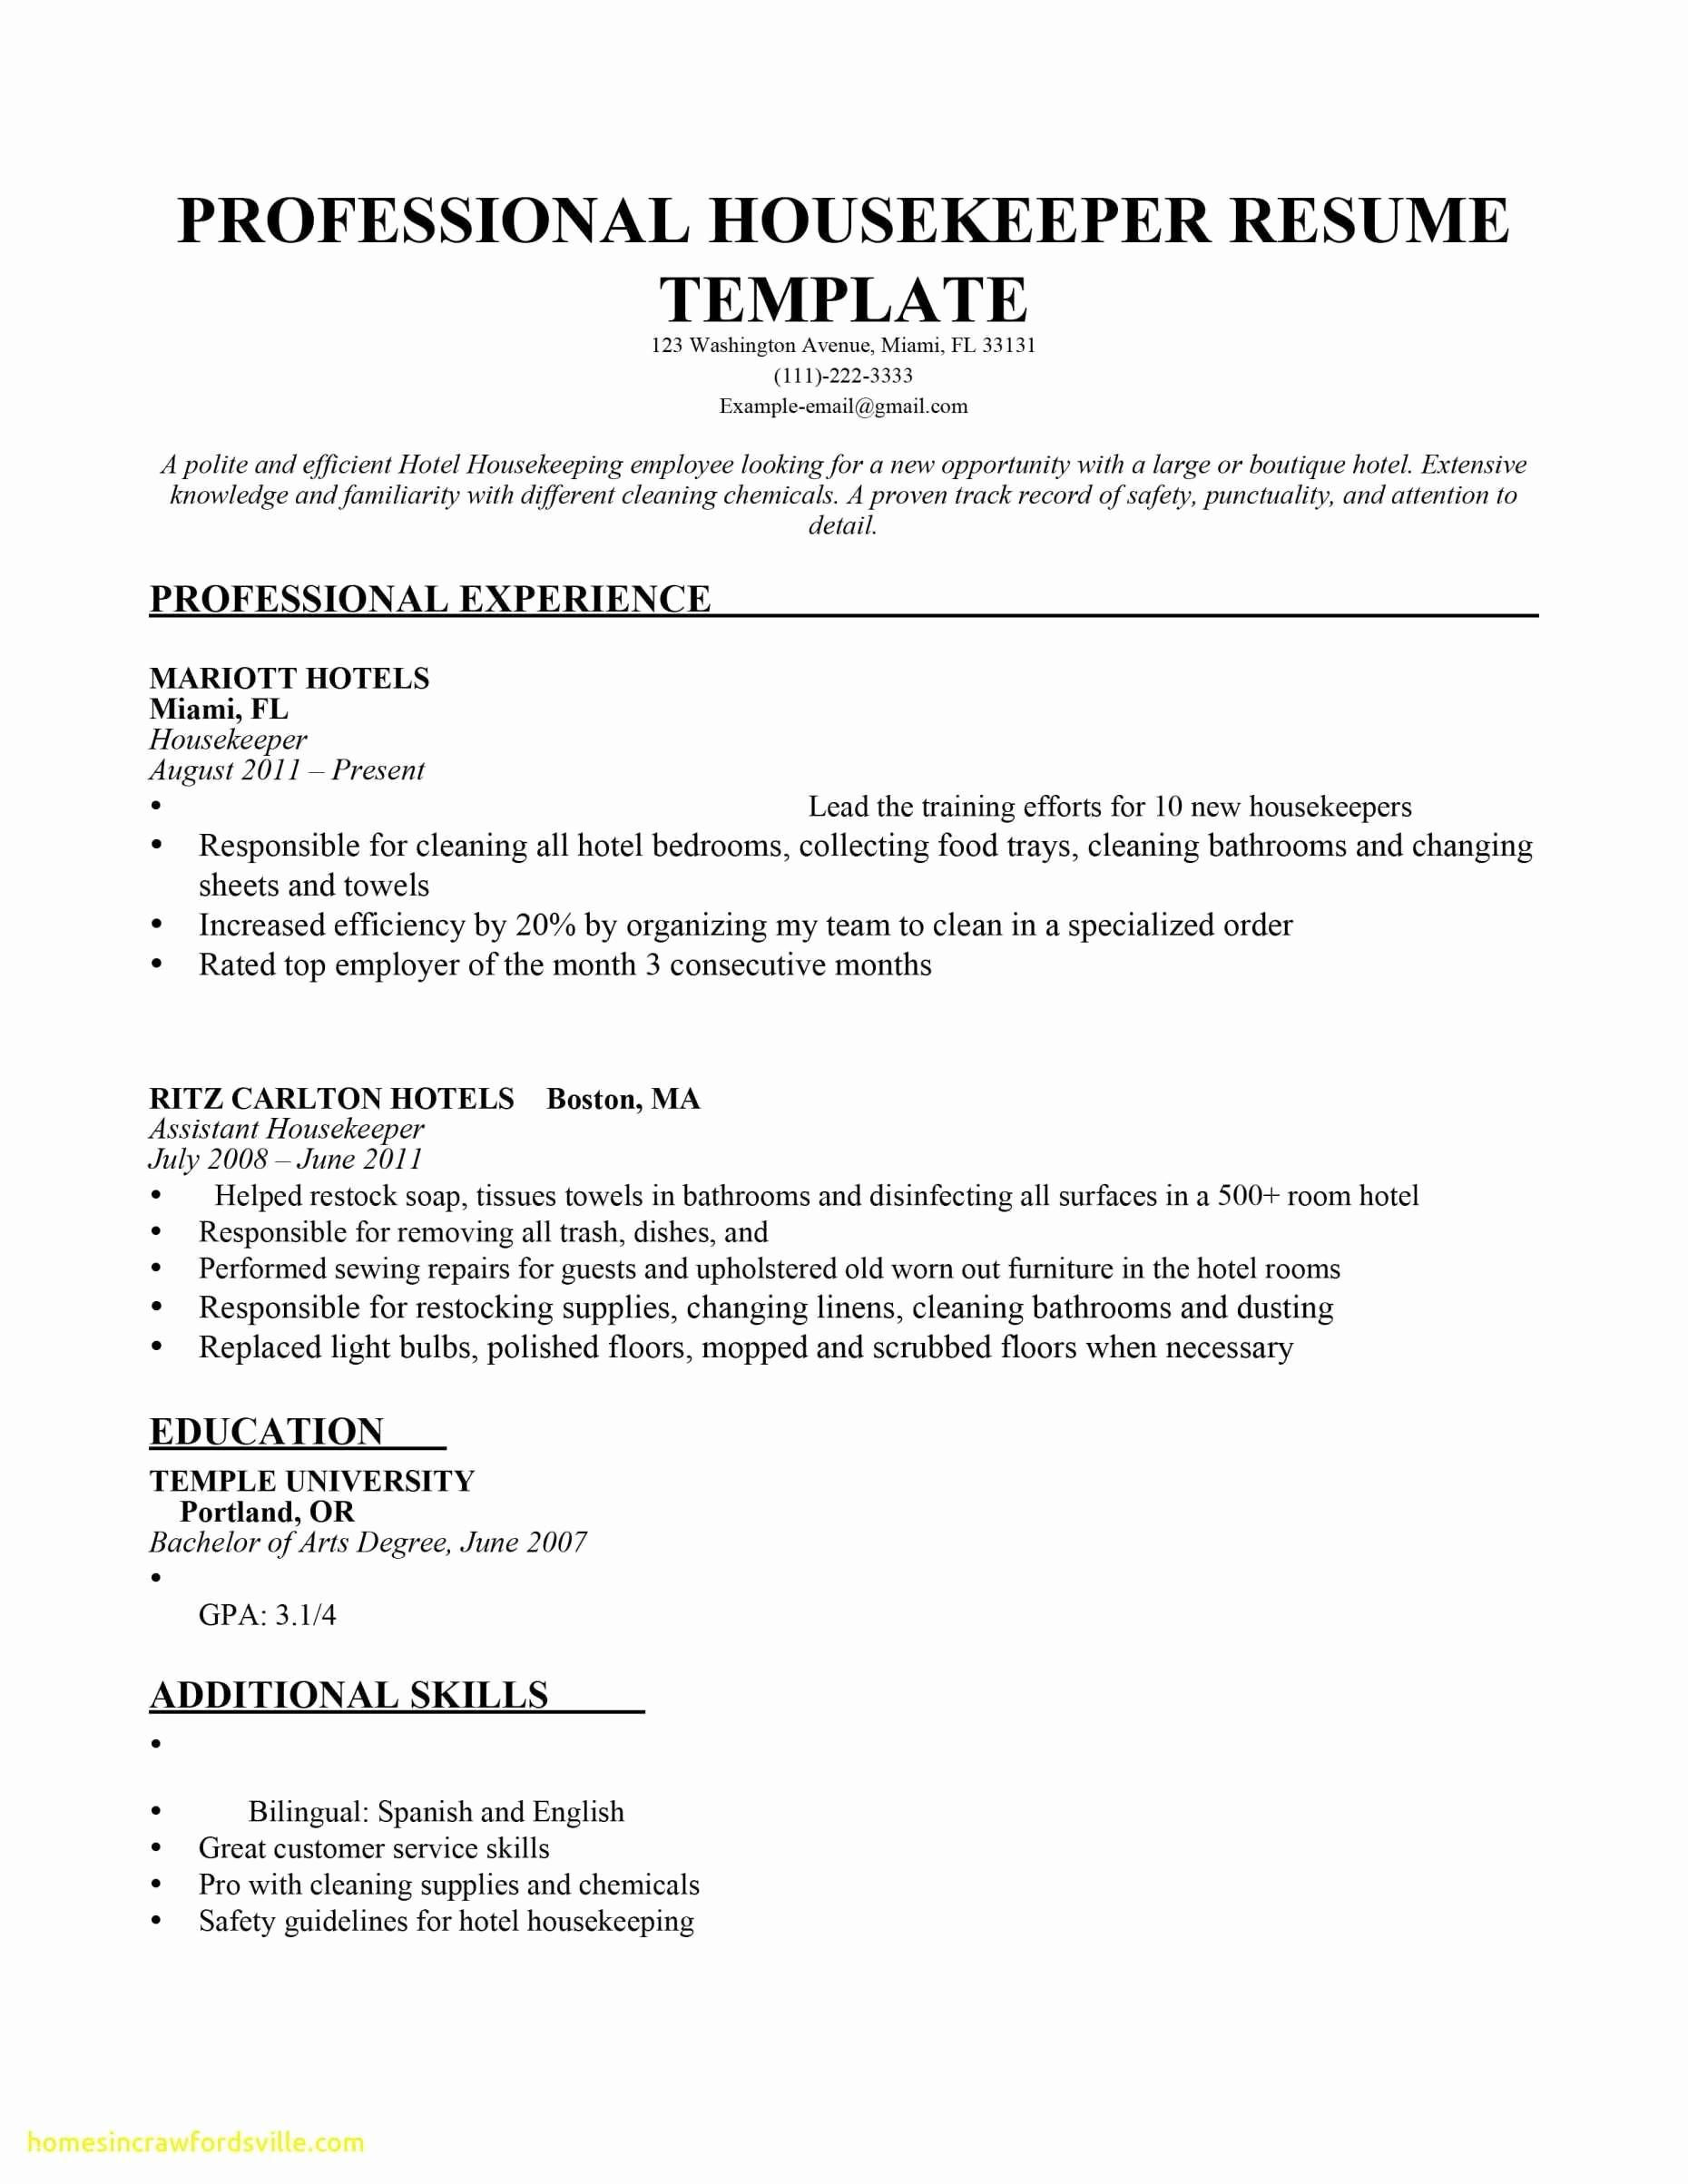 temple university resume template example-Temple Resume format Awesome Housekeeping Resume Templates Myacereporter Myacereporter 2-t